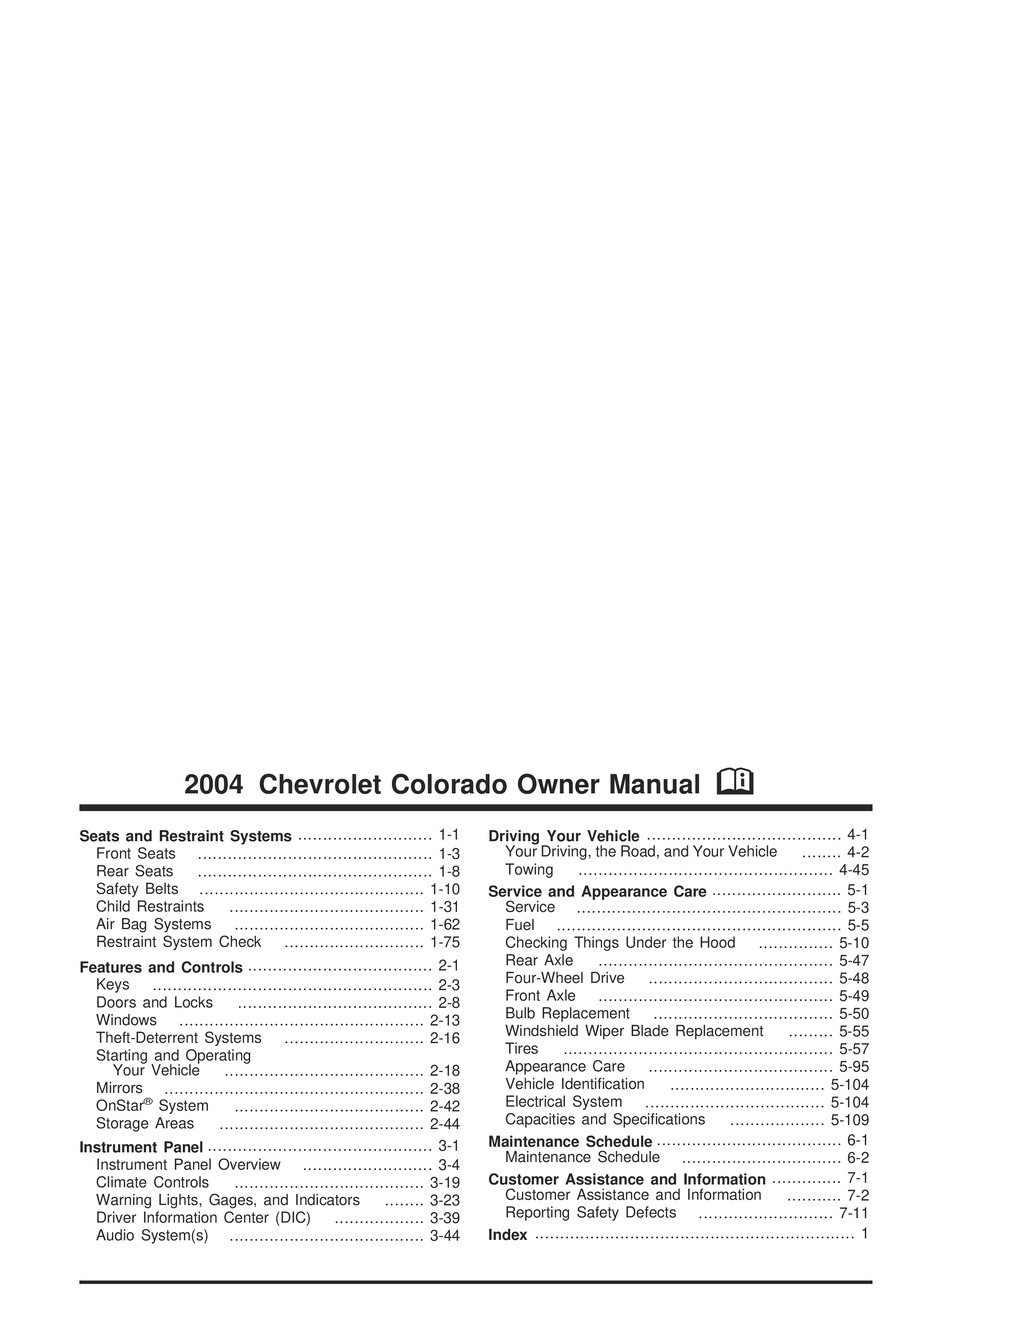 2004 Chevrolet Colorado owners manual